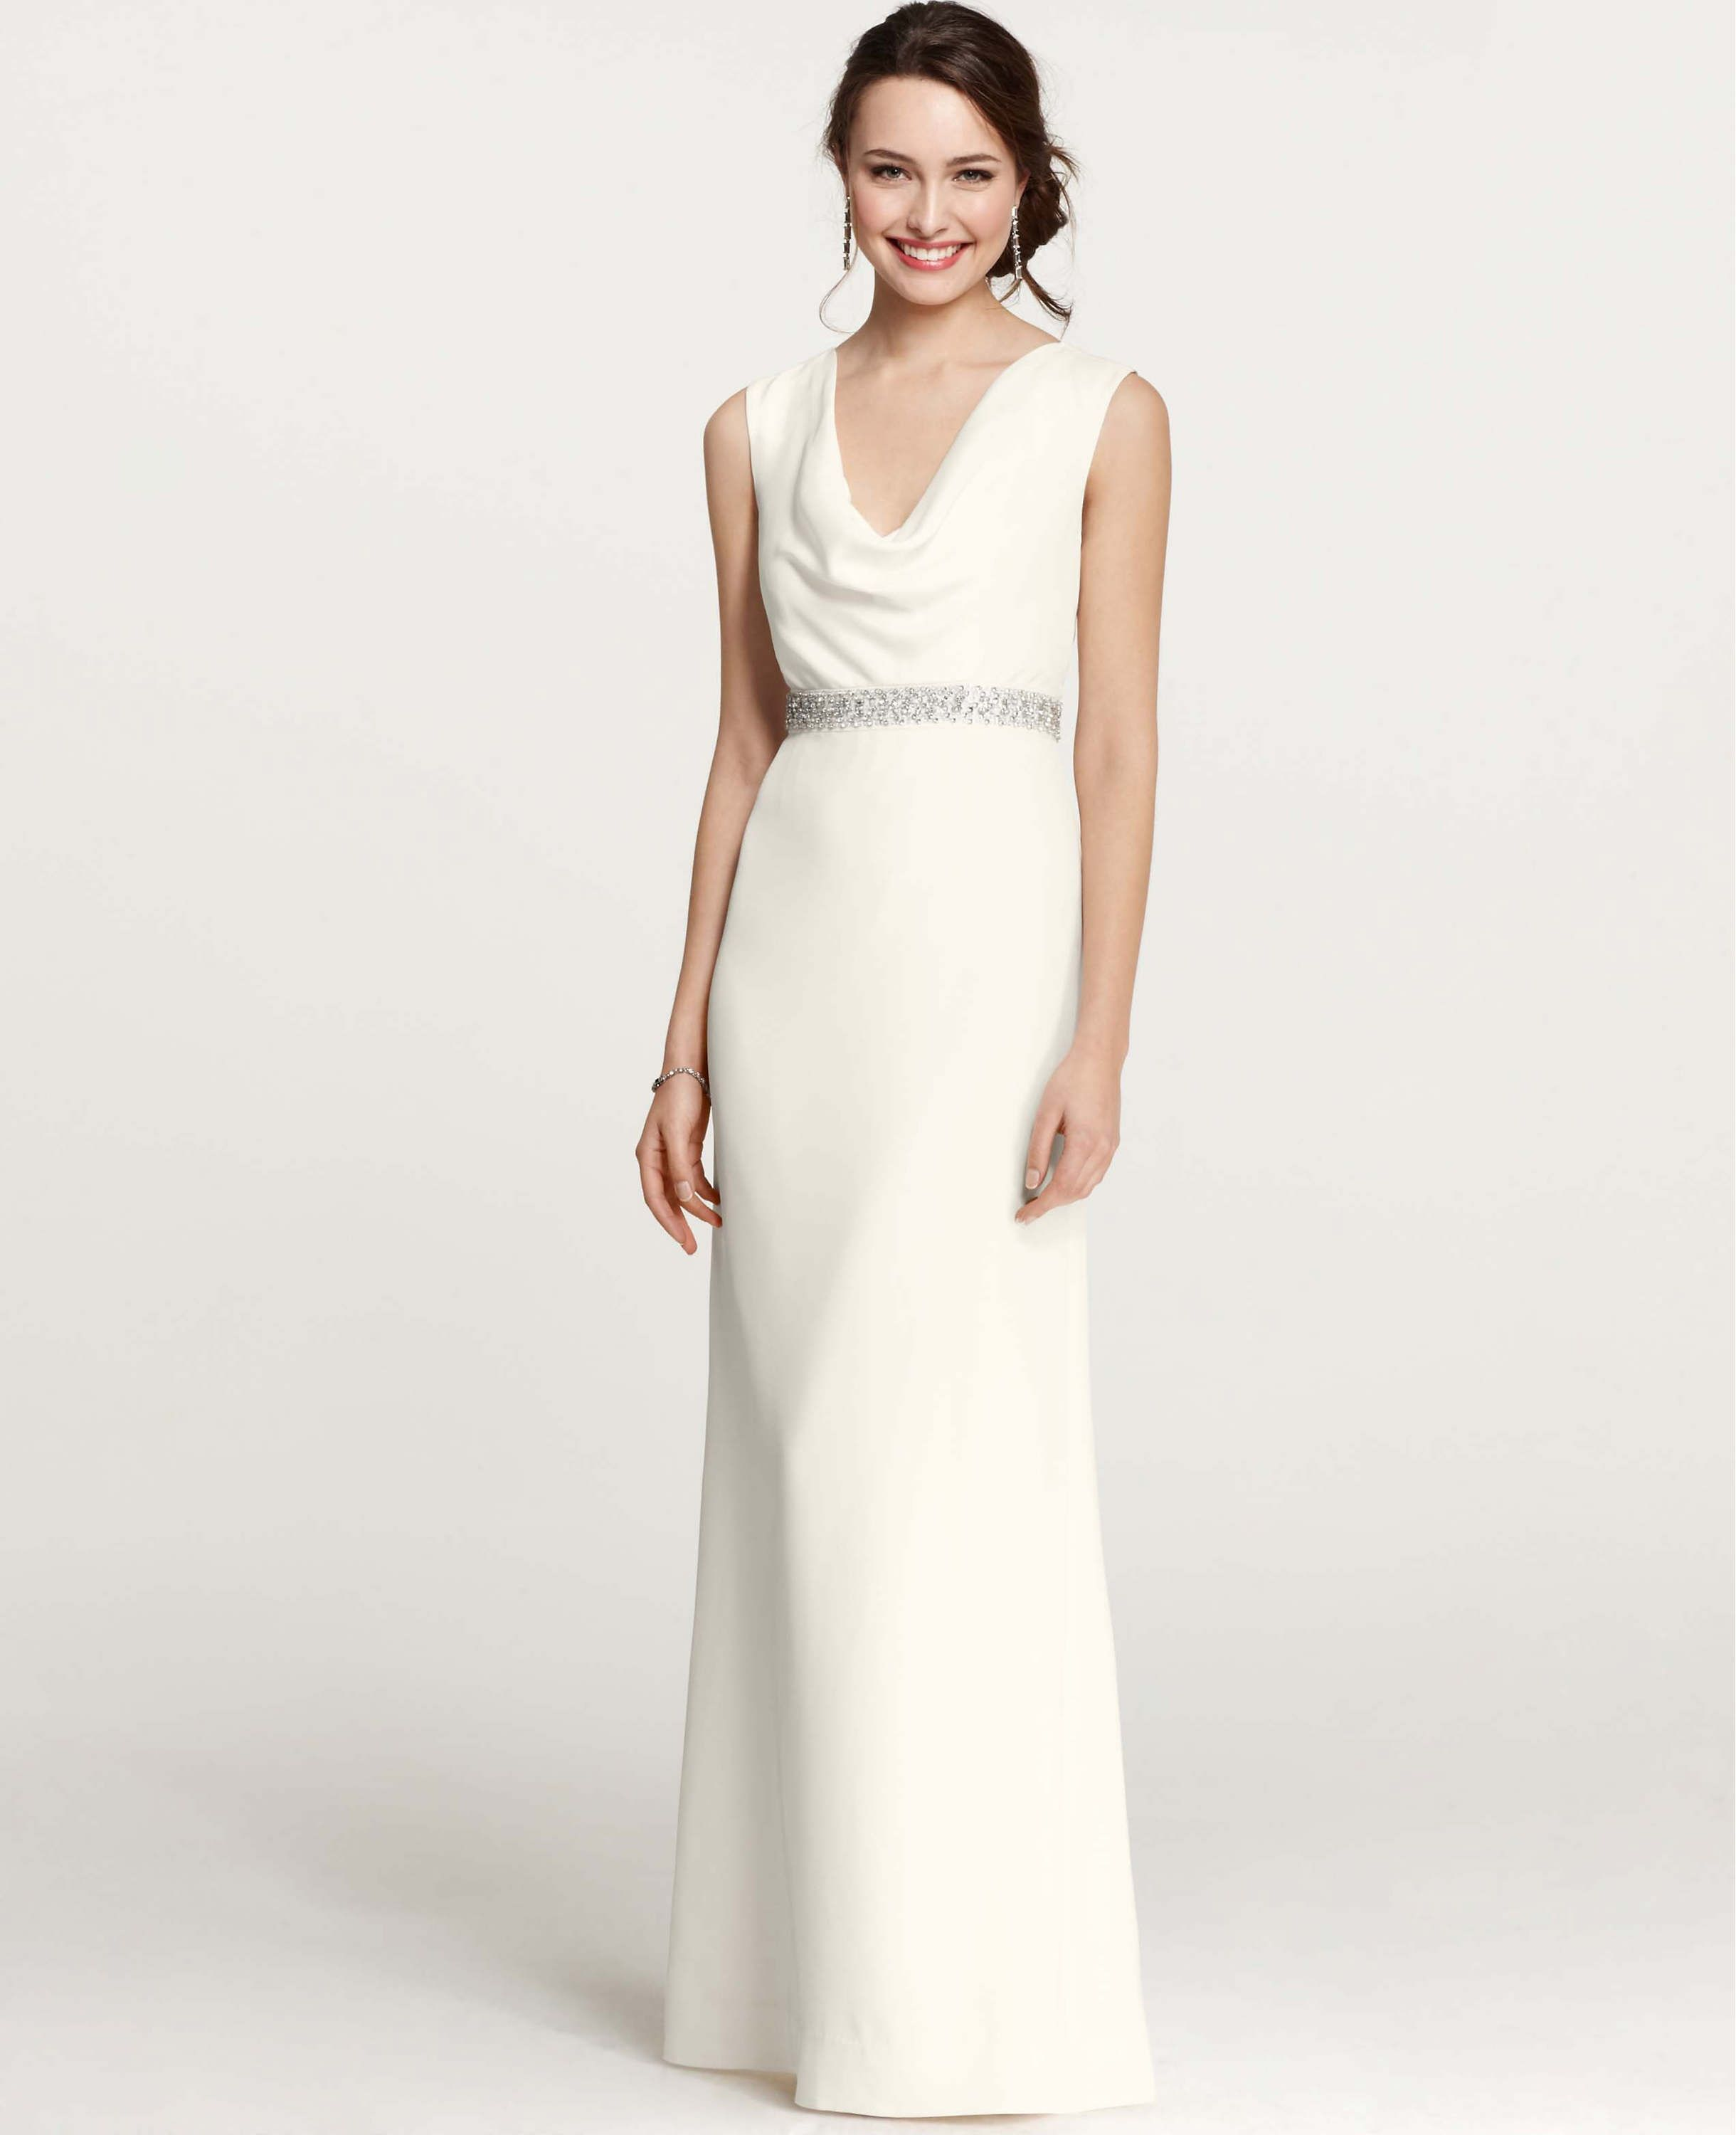 Mya Cowl Neck Wedding Dress | Ann Taylor | Dress/Veil | Pinterest ...